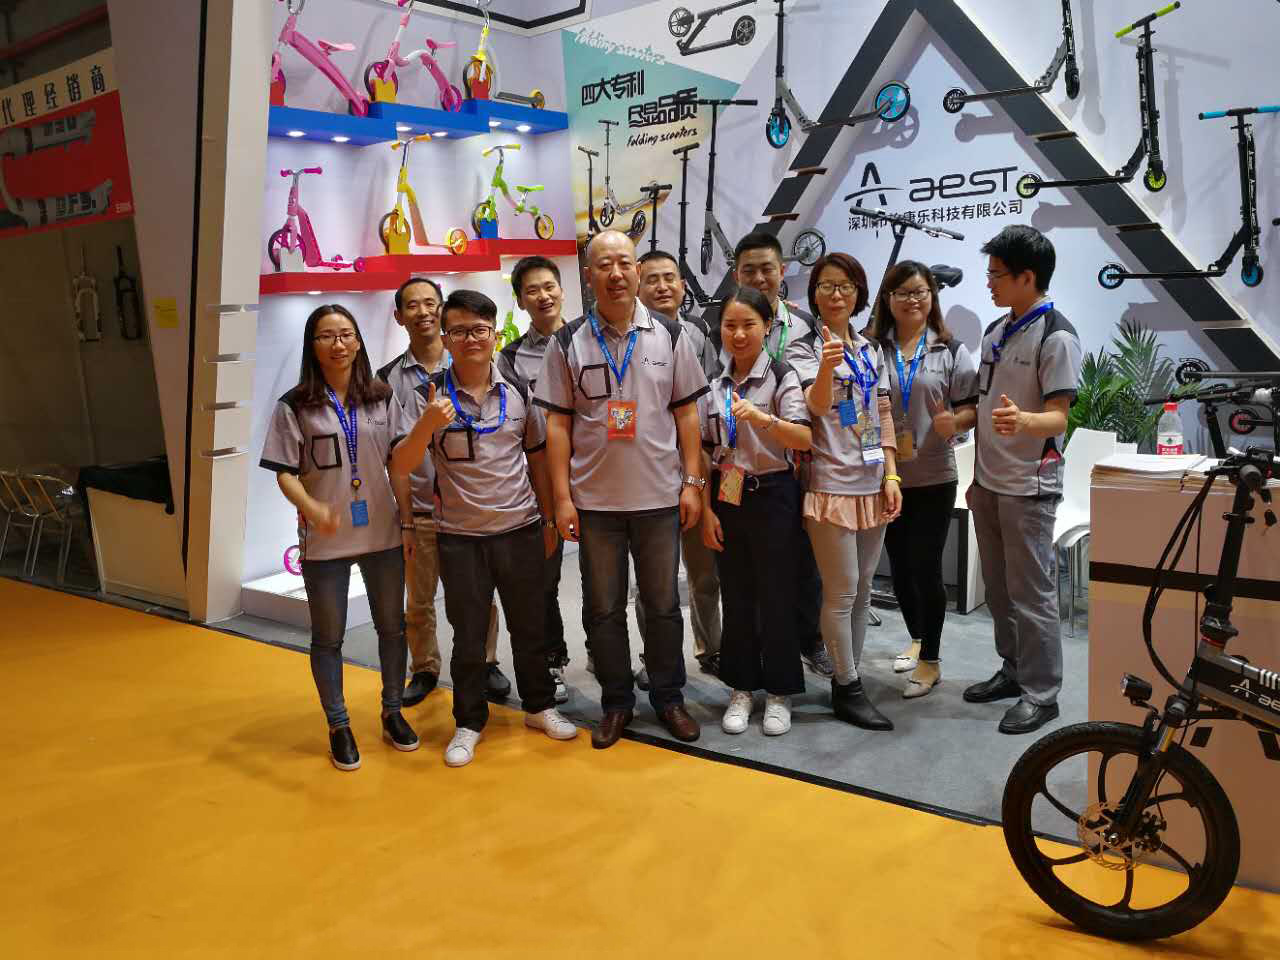 the 27th China international bicycle &motor fair